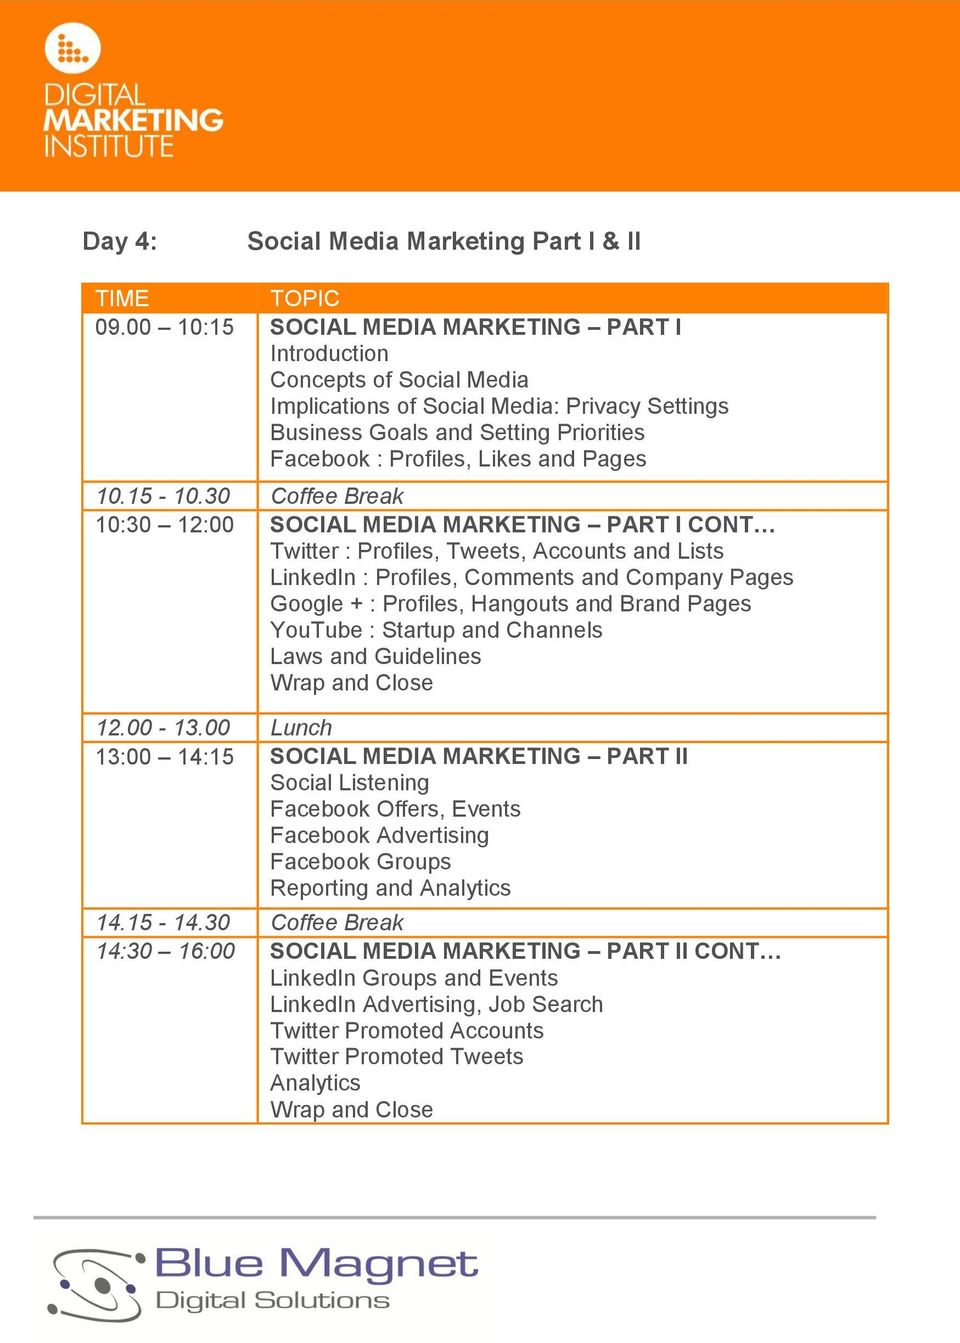 12:00 SOCIAL MEDIA MARKETING PART I CONT Twitter : Profiles, Tweets, Accounts and Lists LinkedIn : Profiles, Comments and Company Pages Google + : Profiles, Hangouts and Brand Pages YouTube :